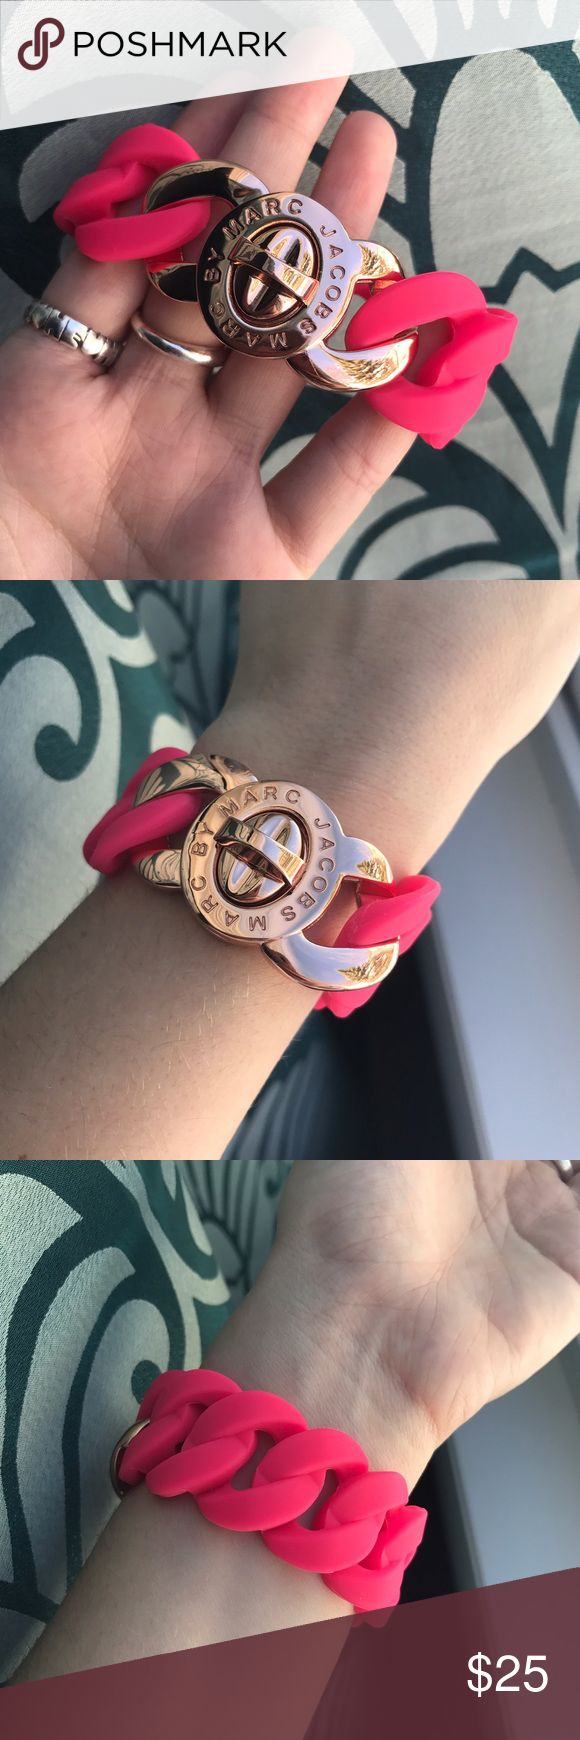 Marc by Marc Jacobs Pink/Rose Gold Chain Bracelet Hardware has no scratches. In perfect condition! Ships with non-brand jewelry bag. Marc by Marc Jacobs Jewelry Bracelets